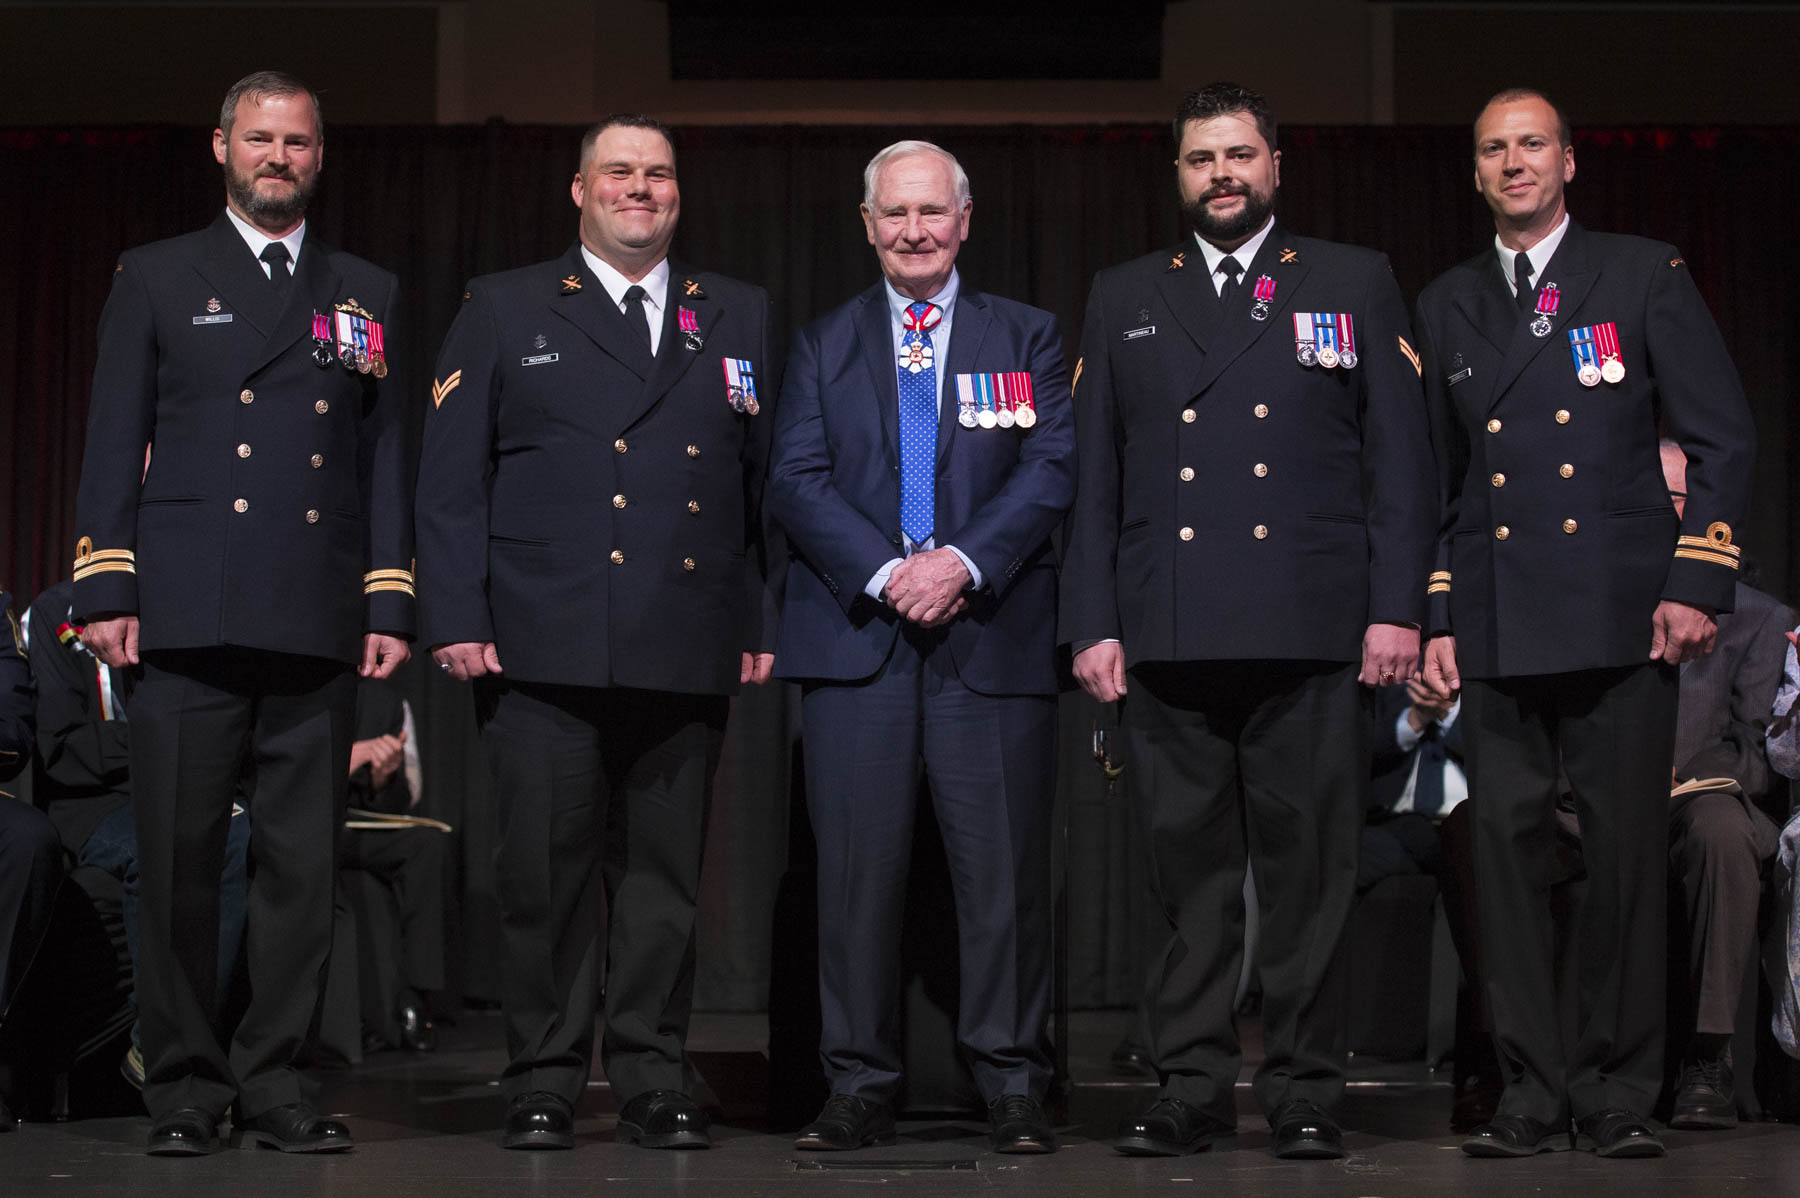 His Excellency presented the Medal of Bravery to Lieutenant(N) Samuel Gaudreault, M.B., C.D., Leading Seaman Jean-François Martineau, M.B., Able Seaman James Richards, M.B., and Lieutenant(N) Daniel Willis, M.B., C.D. On November 15, 2014, Lieutenant(N) Samuel Gaudreault, Leading Seaman Jean-François Martineau, Able Seaman James Richards and Lieutenant(N) Daniel Willis rescued several people from a burning building in Antalya, Turkey. When the top floor caught fire, lieutenants Gaudreault and Willis grabbed an extinguisher and ran upstairs to fight the fire and help people escape. Leading Seaman Martineau and Able Seaman Richards were walking by when they saw the blaze. They immediately entered the building and ran upstairs. Able Seaman Richards ran across the room to a balcony where a man was trying to catch a water hose being thrown from below. Lieutenant(N) Willis went back downstairs to retrieve wet towels to cover their faces. With Leading Seaman Martineau leading the way, the rescuers extinguished the fire and brought the last victim to safety.